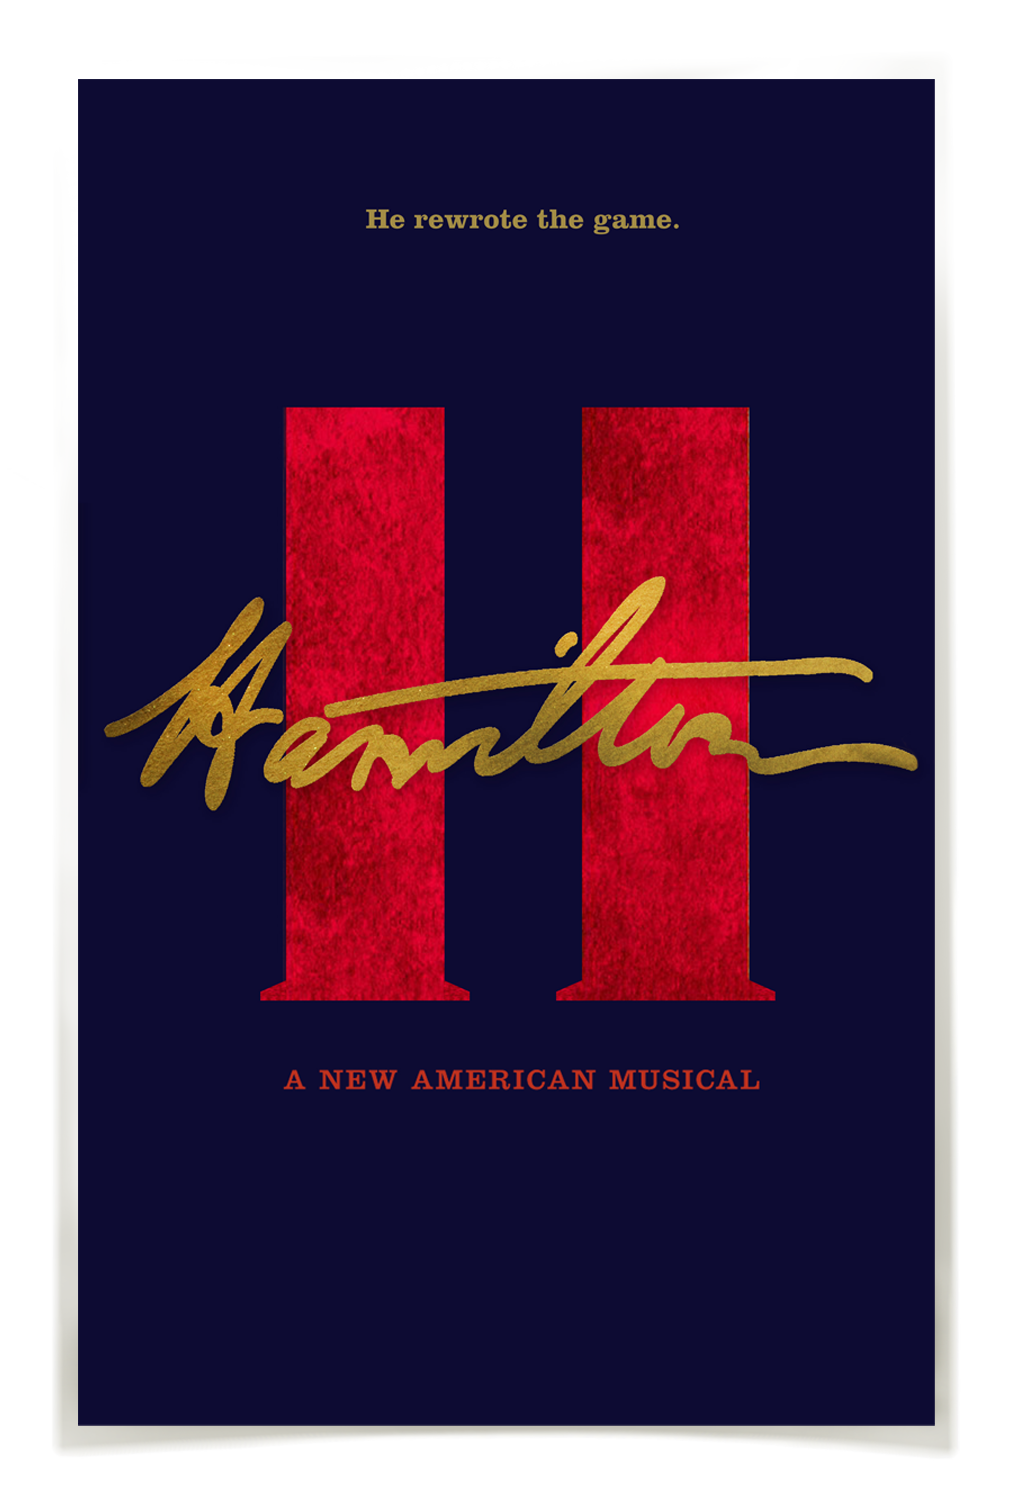 covell_design_hamilton_broadway_5.png